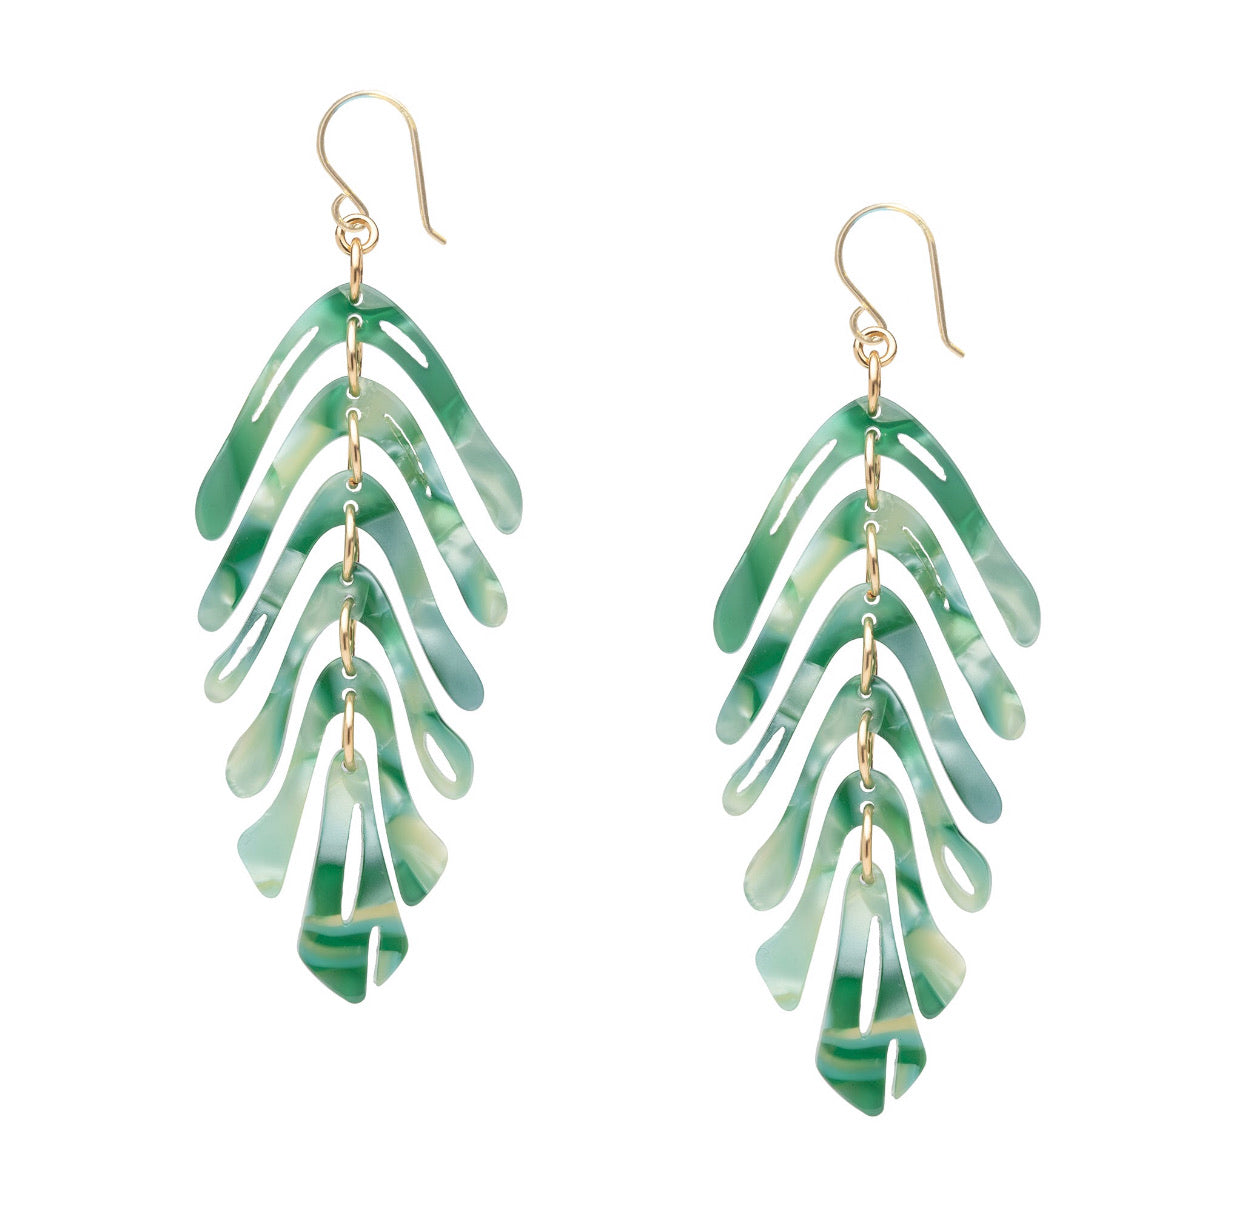 Banana Palm Leaf Earrings